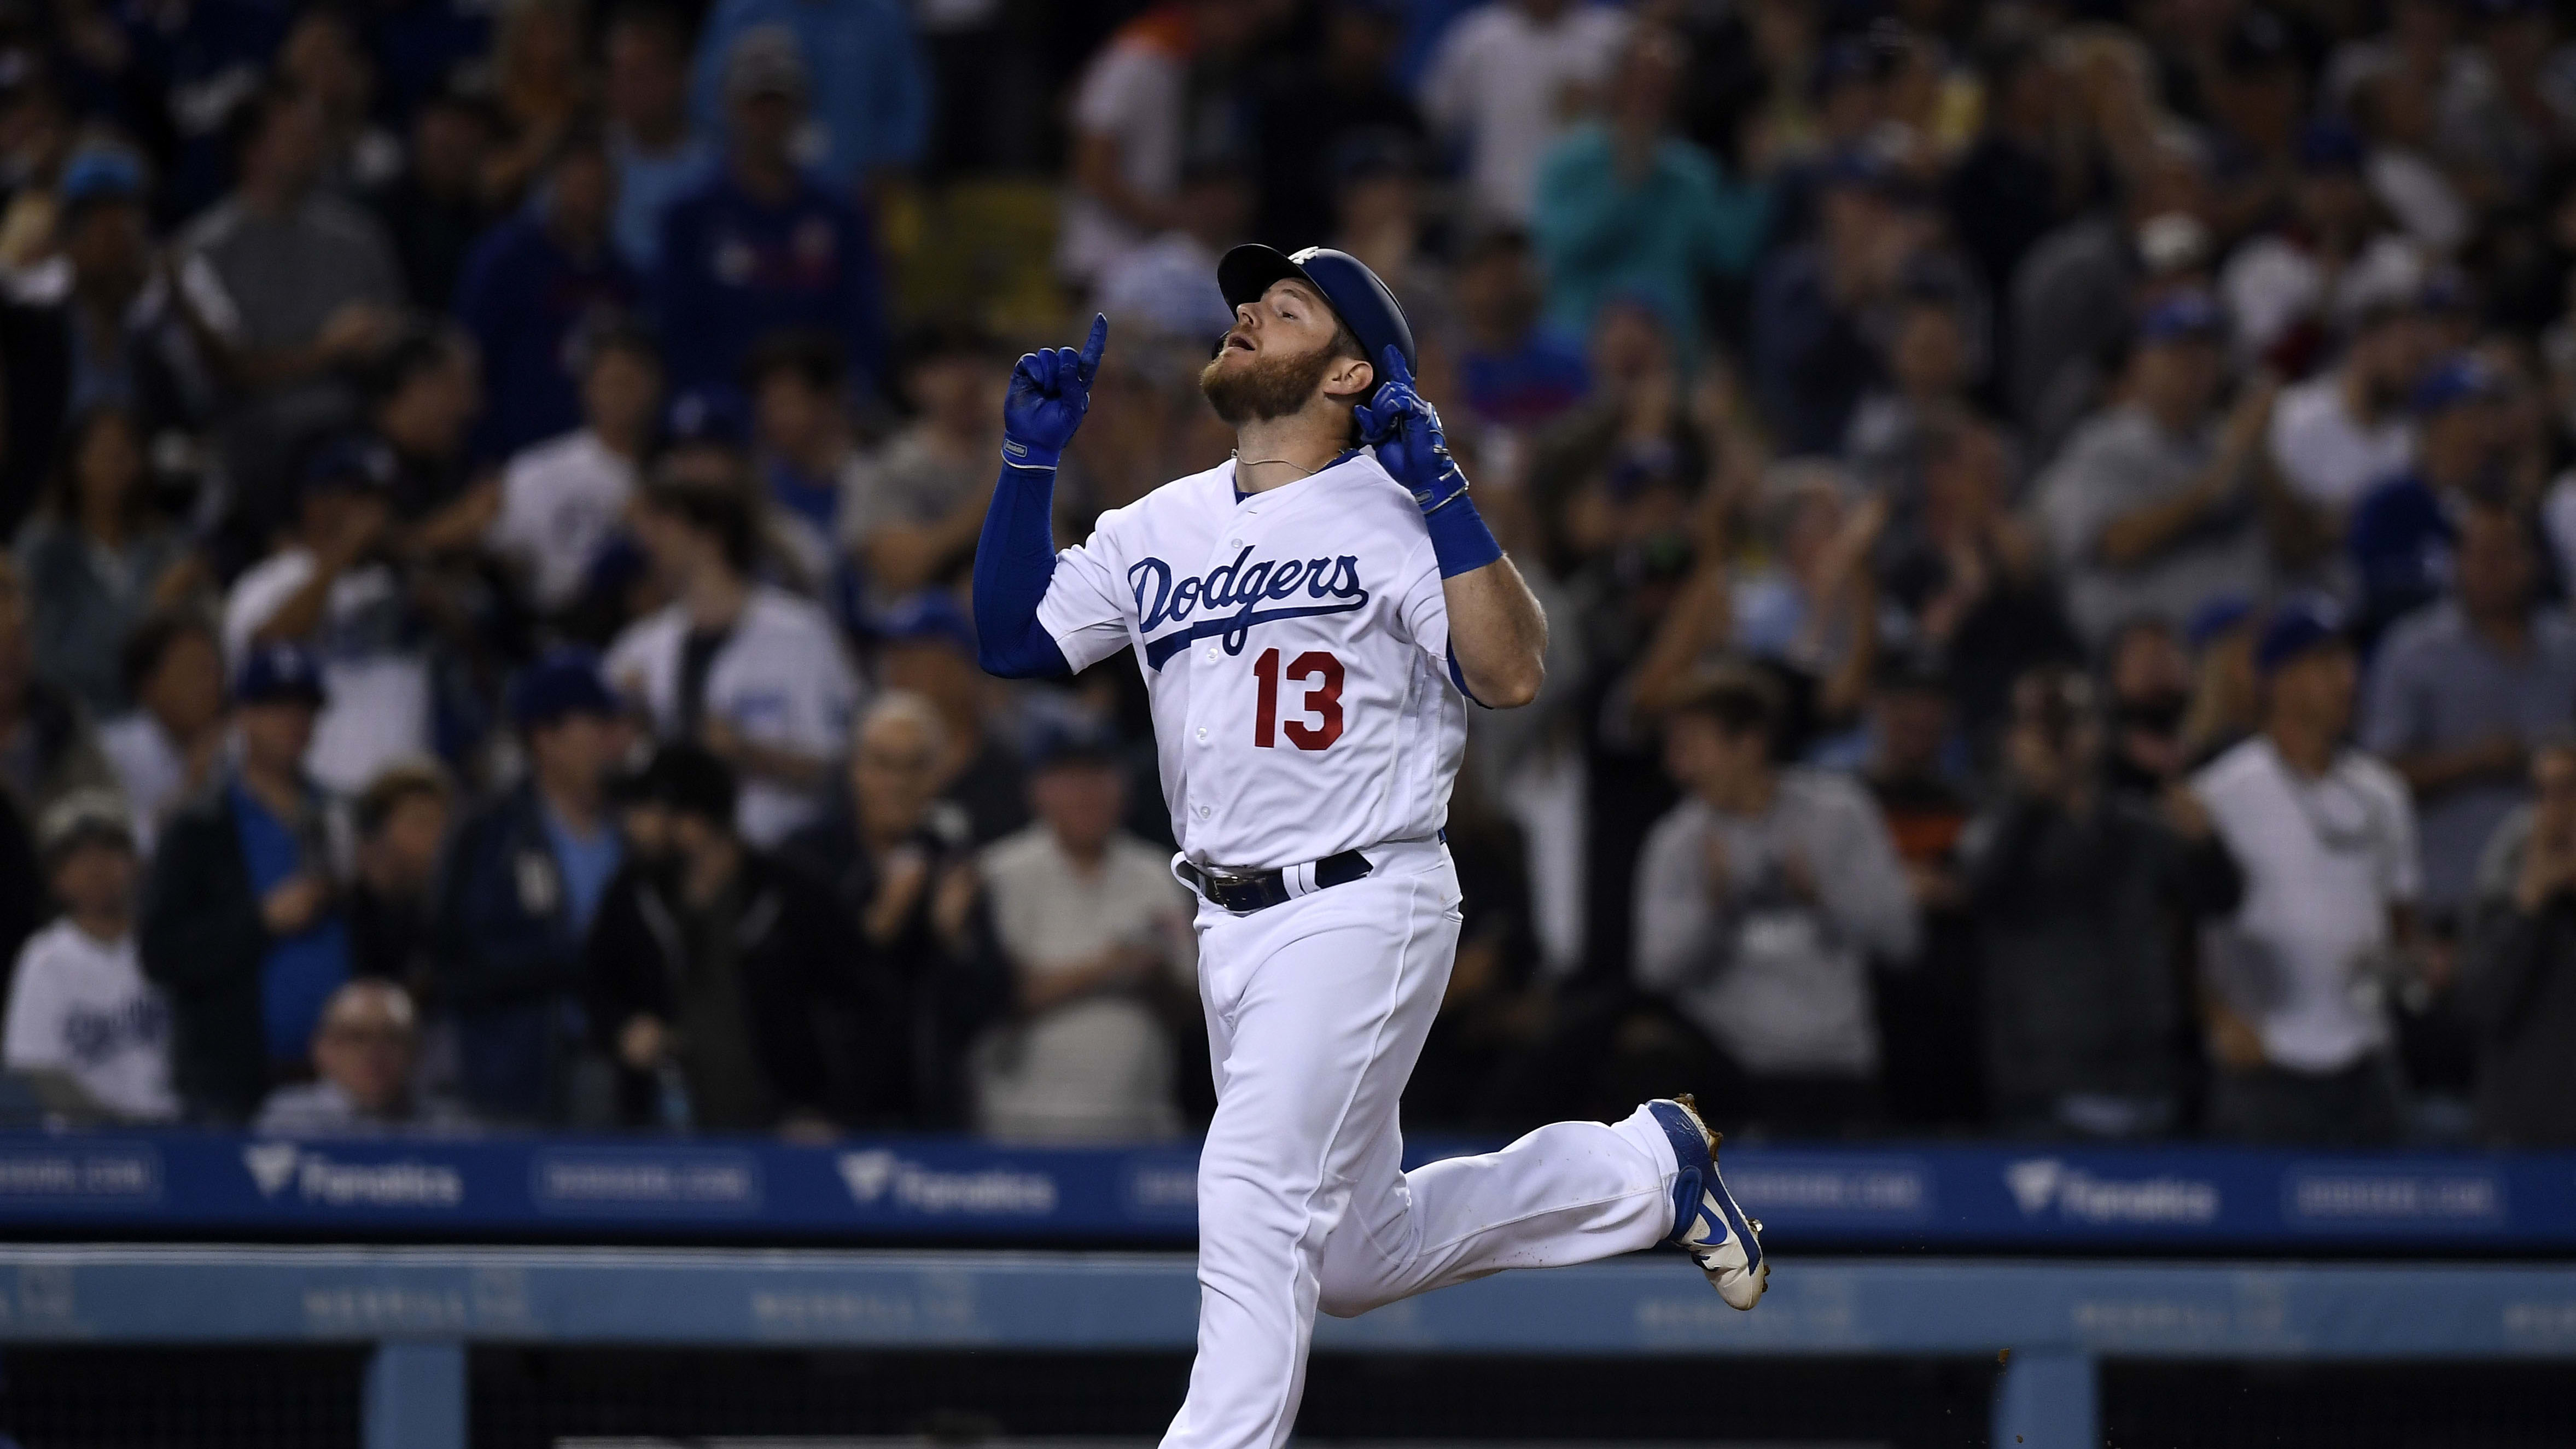 LOS ANGELES, CA - JUNE 13: Max Muncy #13 of the Los Angeles Dodgers celebrate after hitting a two run home run against Chicago Cubs during the fourth inning to at Dodger Stadium on June 13, 2019 in Los Angeles, California. (Photo by Kevork Djansezian/Getty Images)